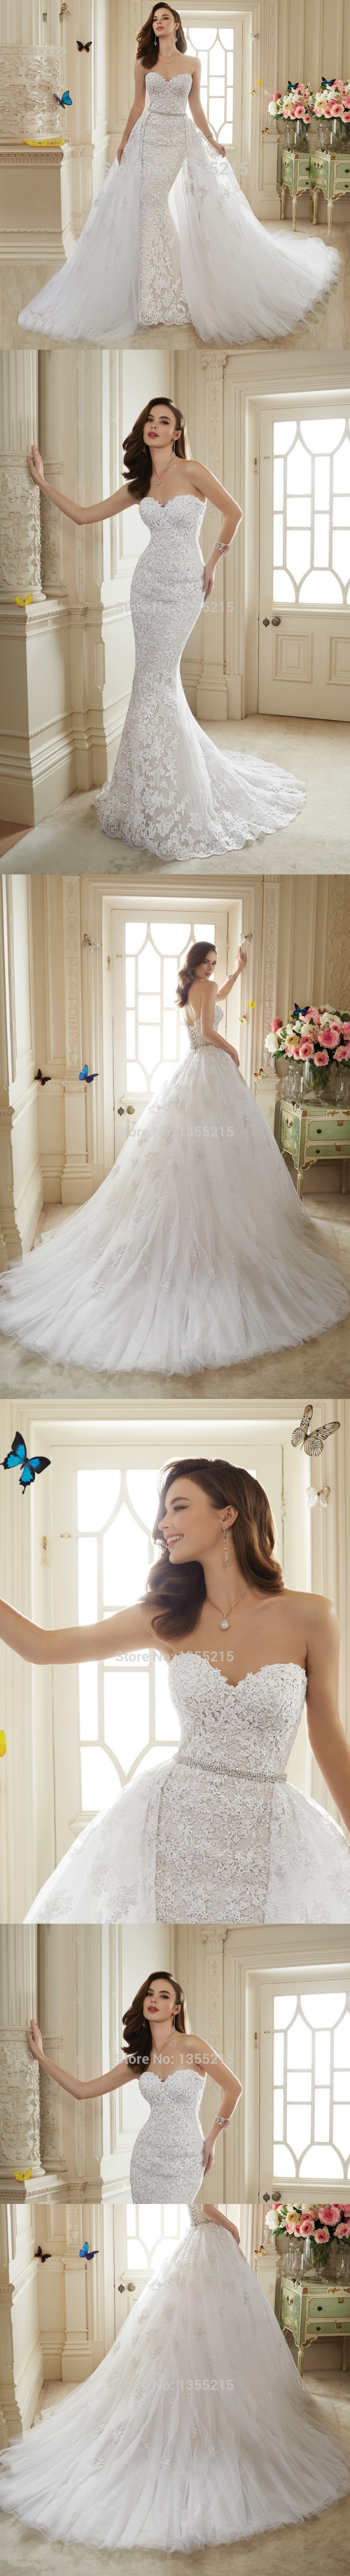 Gorgeous Style Elegant Off the Shoulder Mermaid Wedding Dresses 2015 Lace Bridal Gowns with Detachable Royal Train